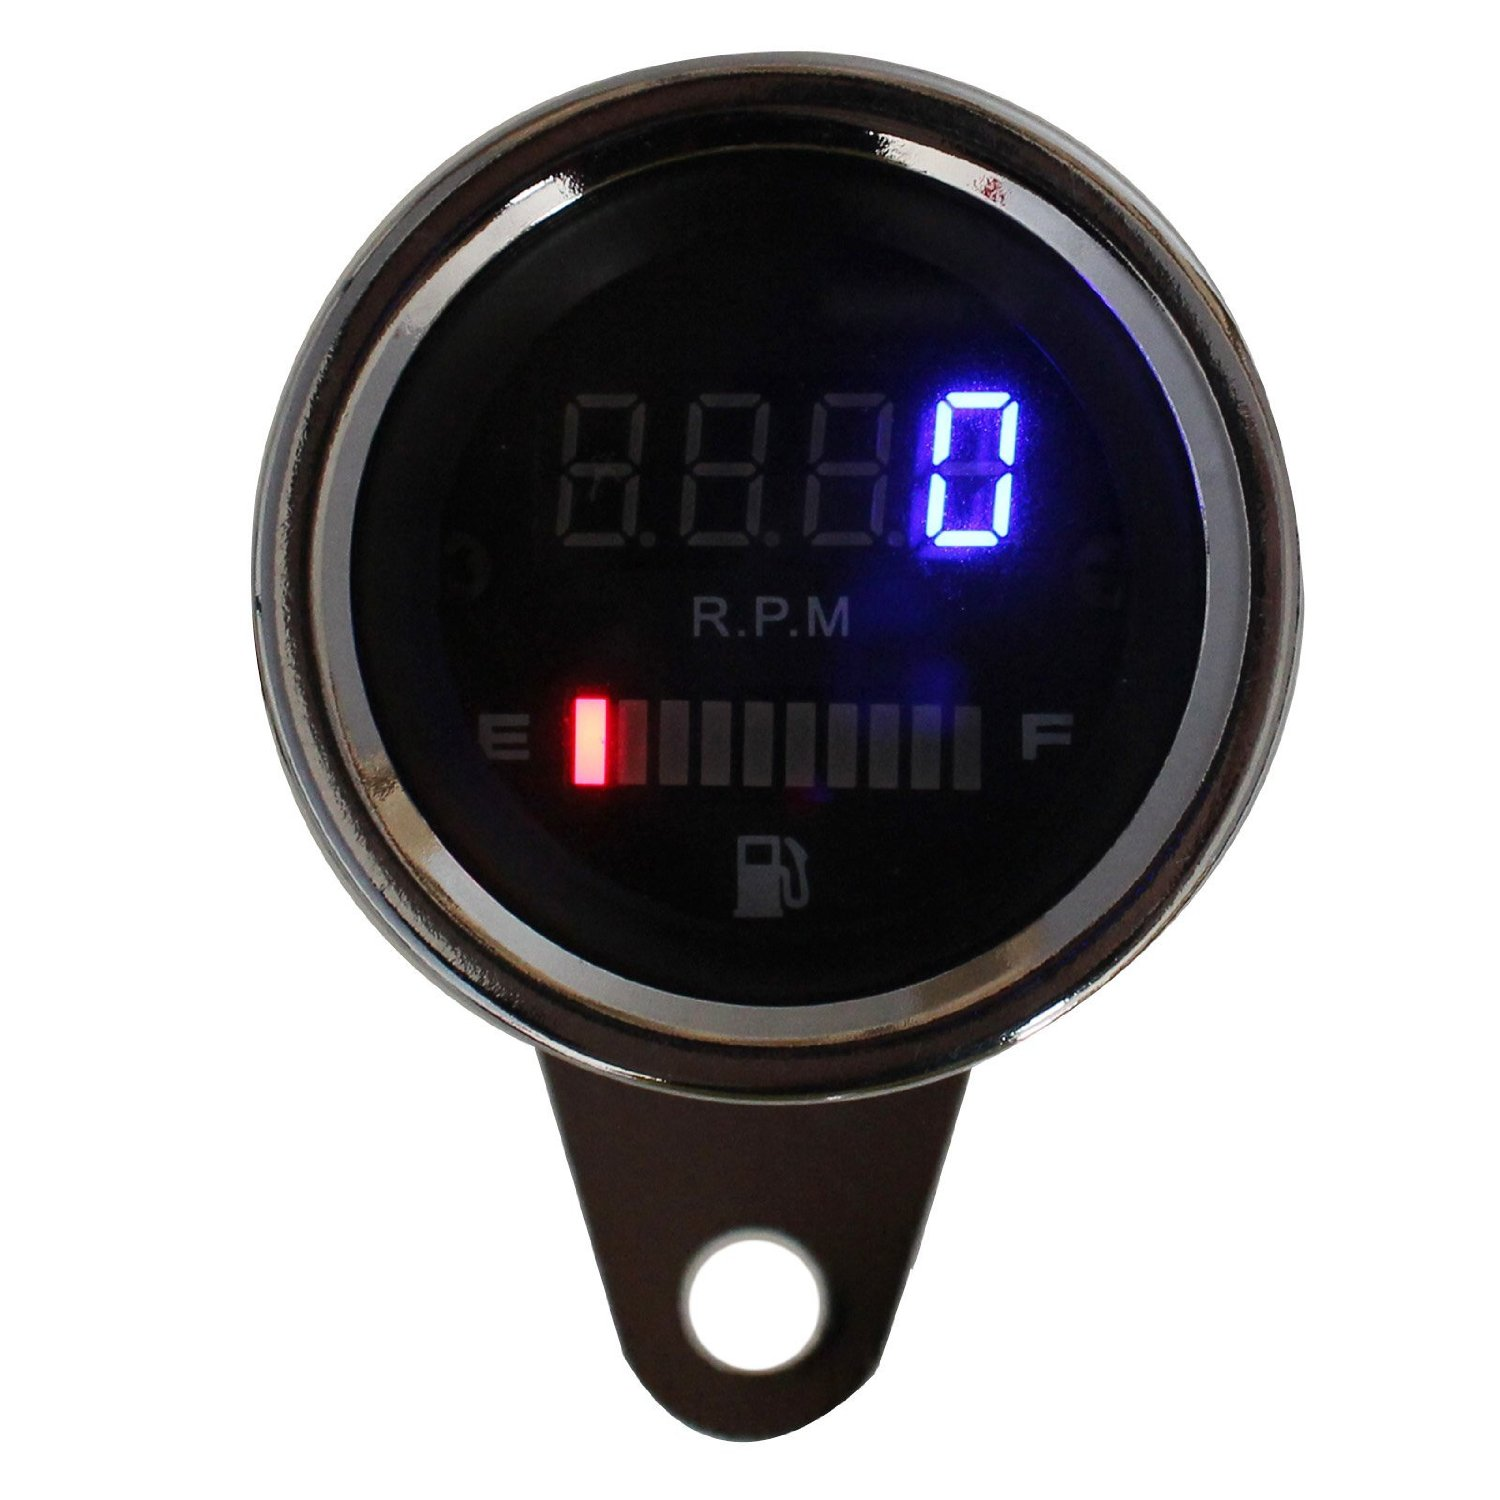 Qiilu Universal Motorcycle LED Digital Speedometer Motorcycle Tachometer Speed Gauge Oil Level Meter Black